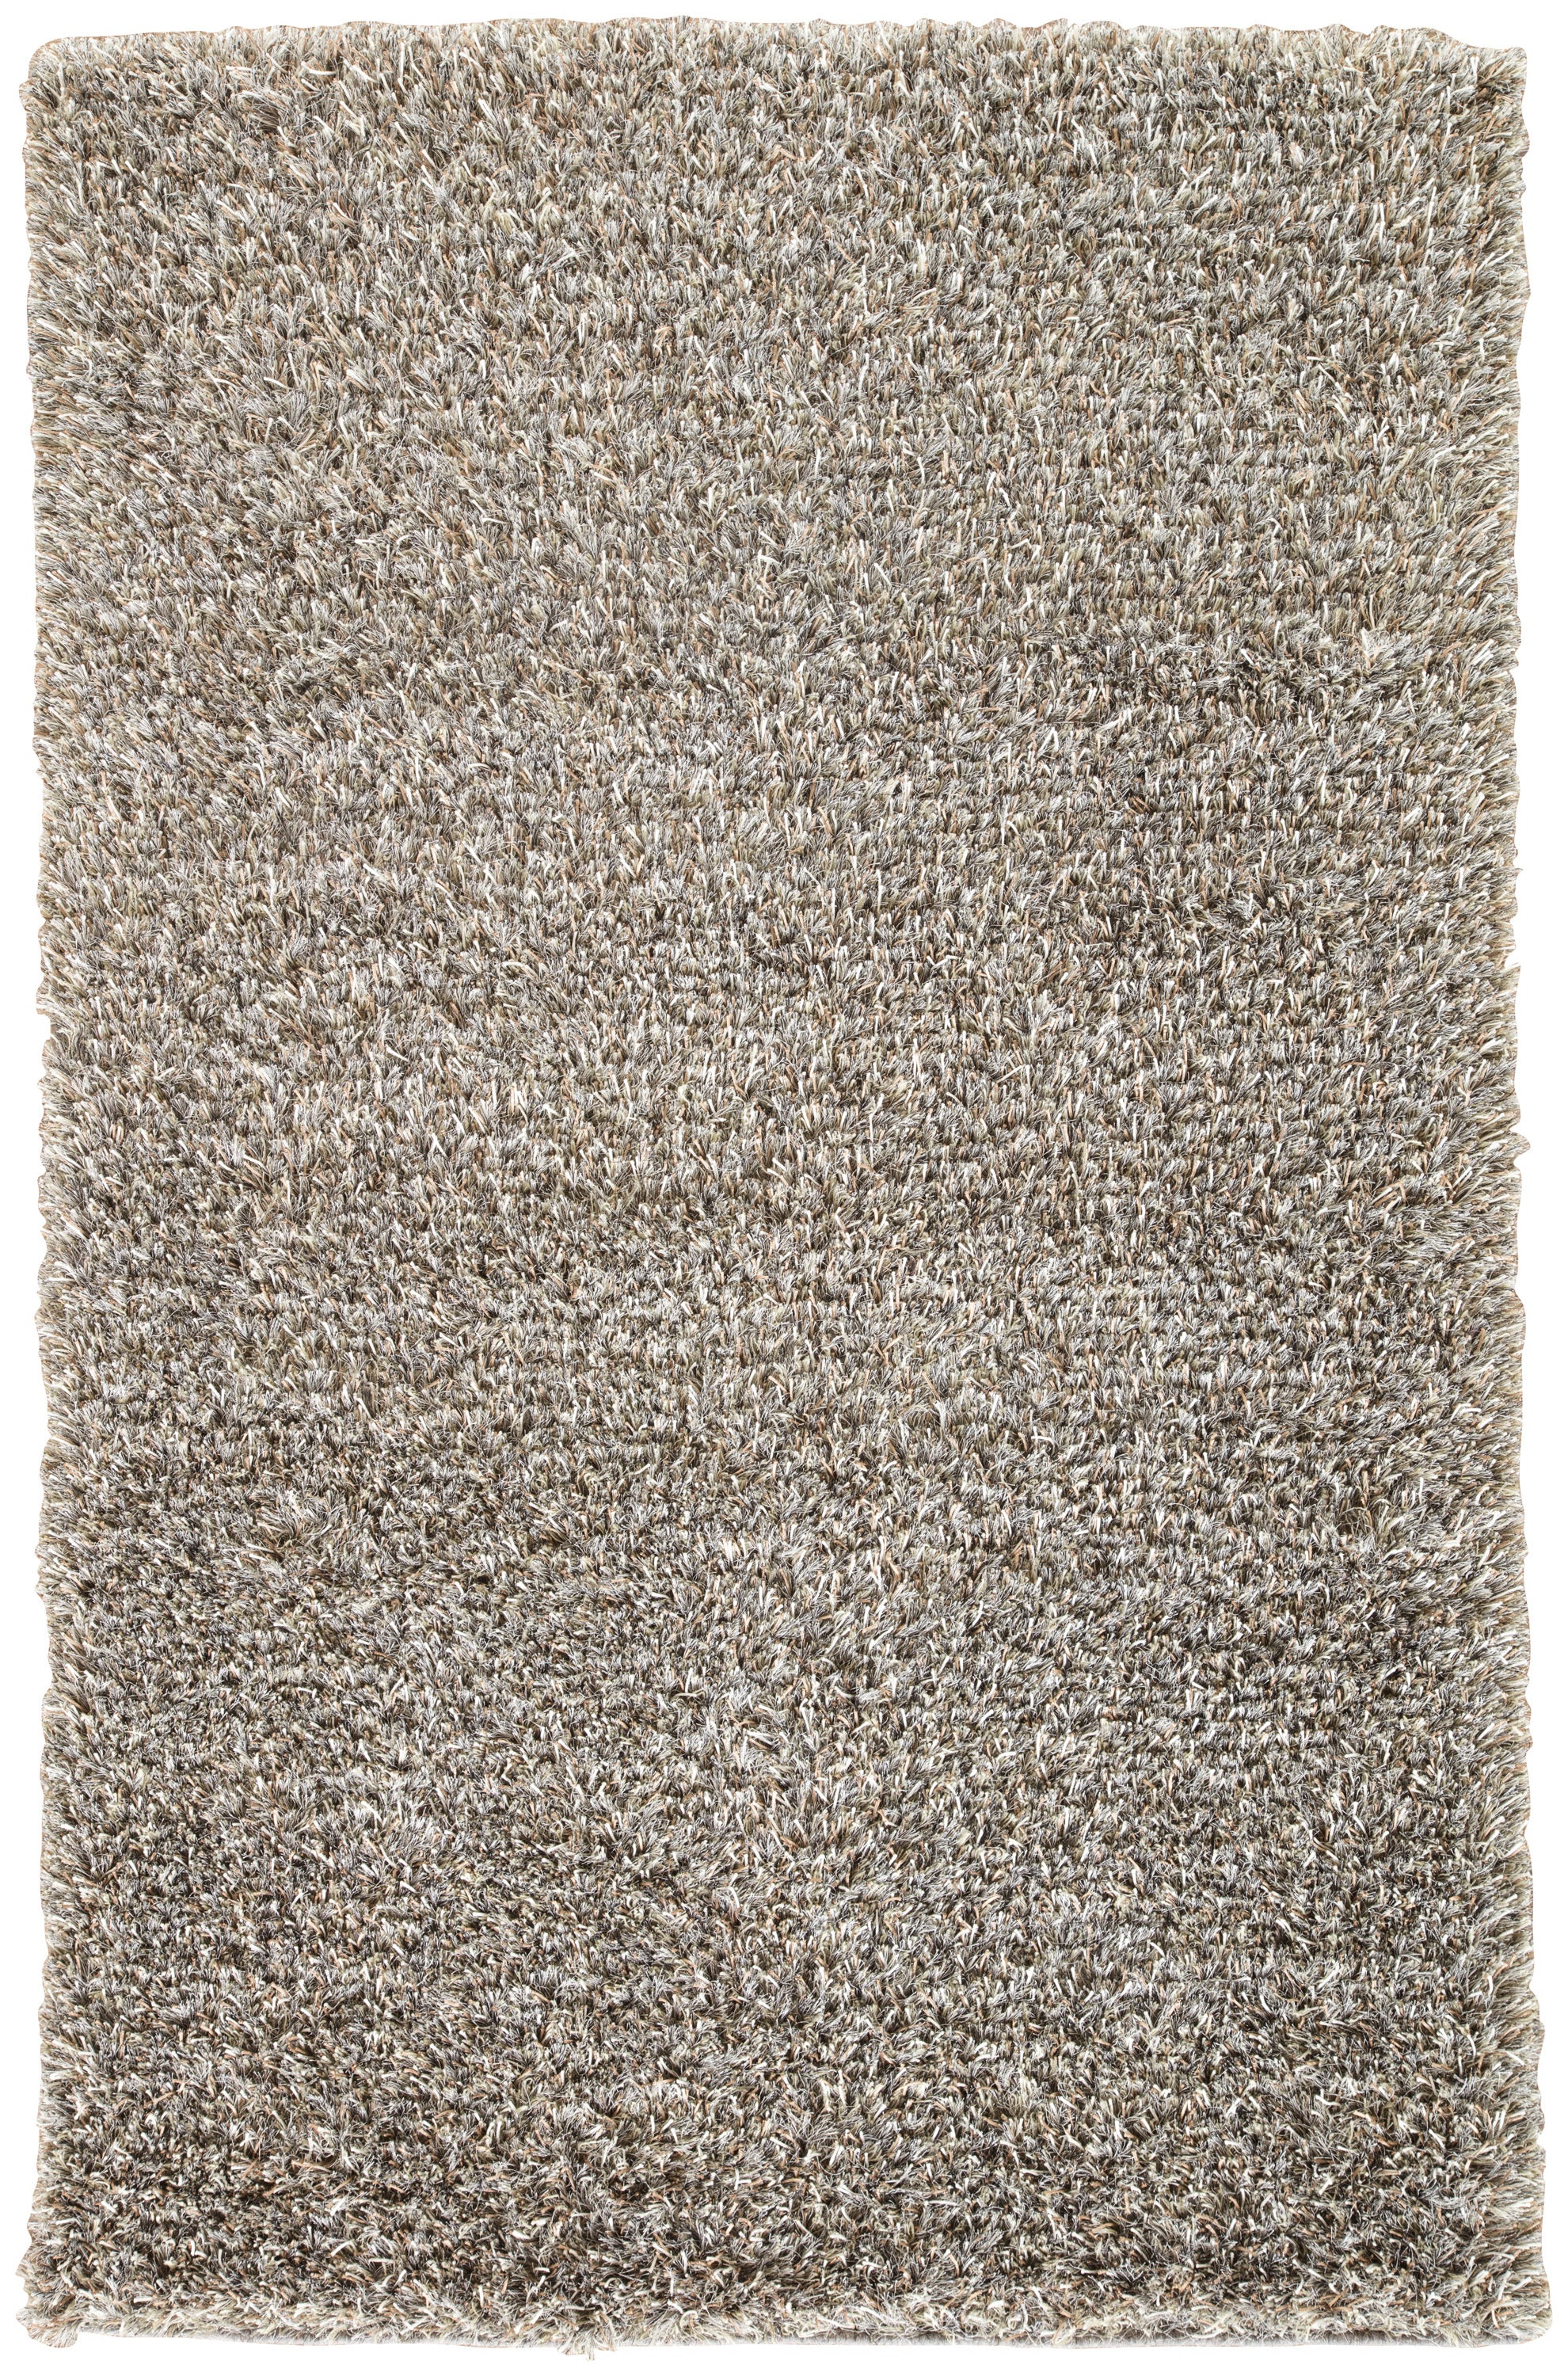 Rectangle Gray Solid Shag Blends Shag recommended for Bedroom, Bathroom, Dining Room, Office, Hallway, Living Room